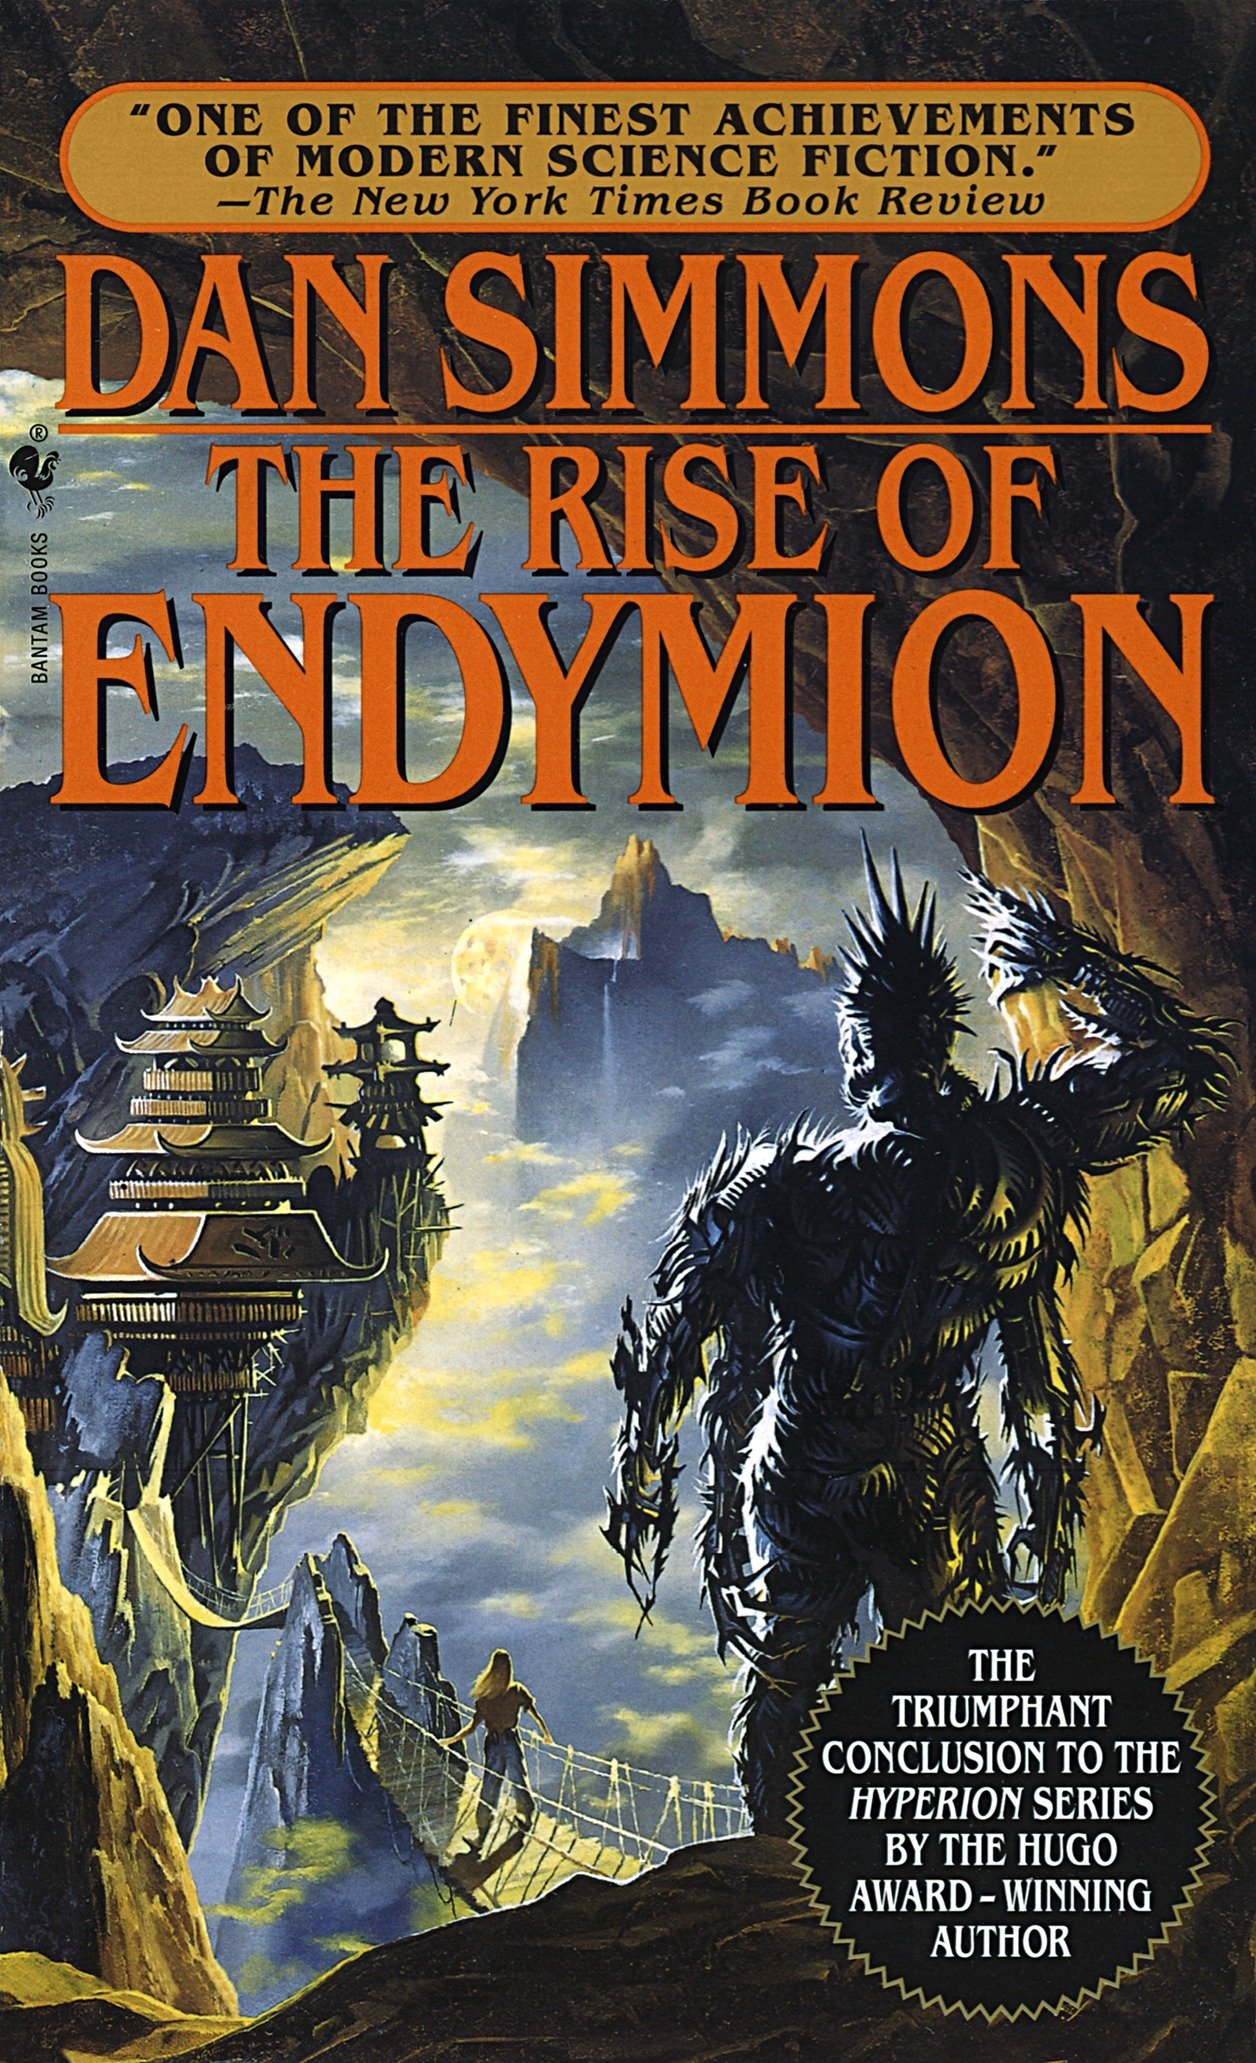 The Rise of Endymion (Hyperion): Dan Simmons: 9780553572988: Amazon.com:  Books